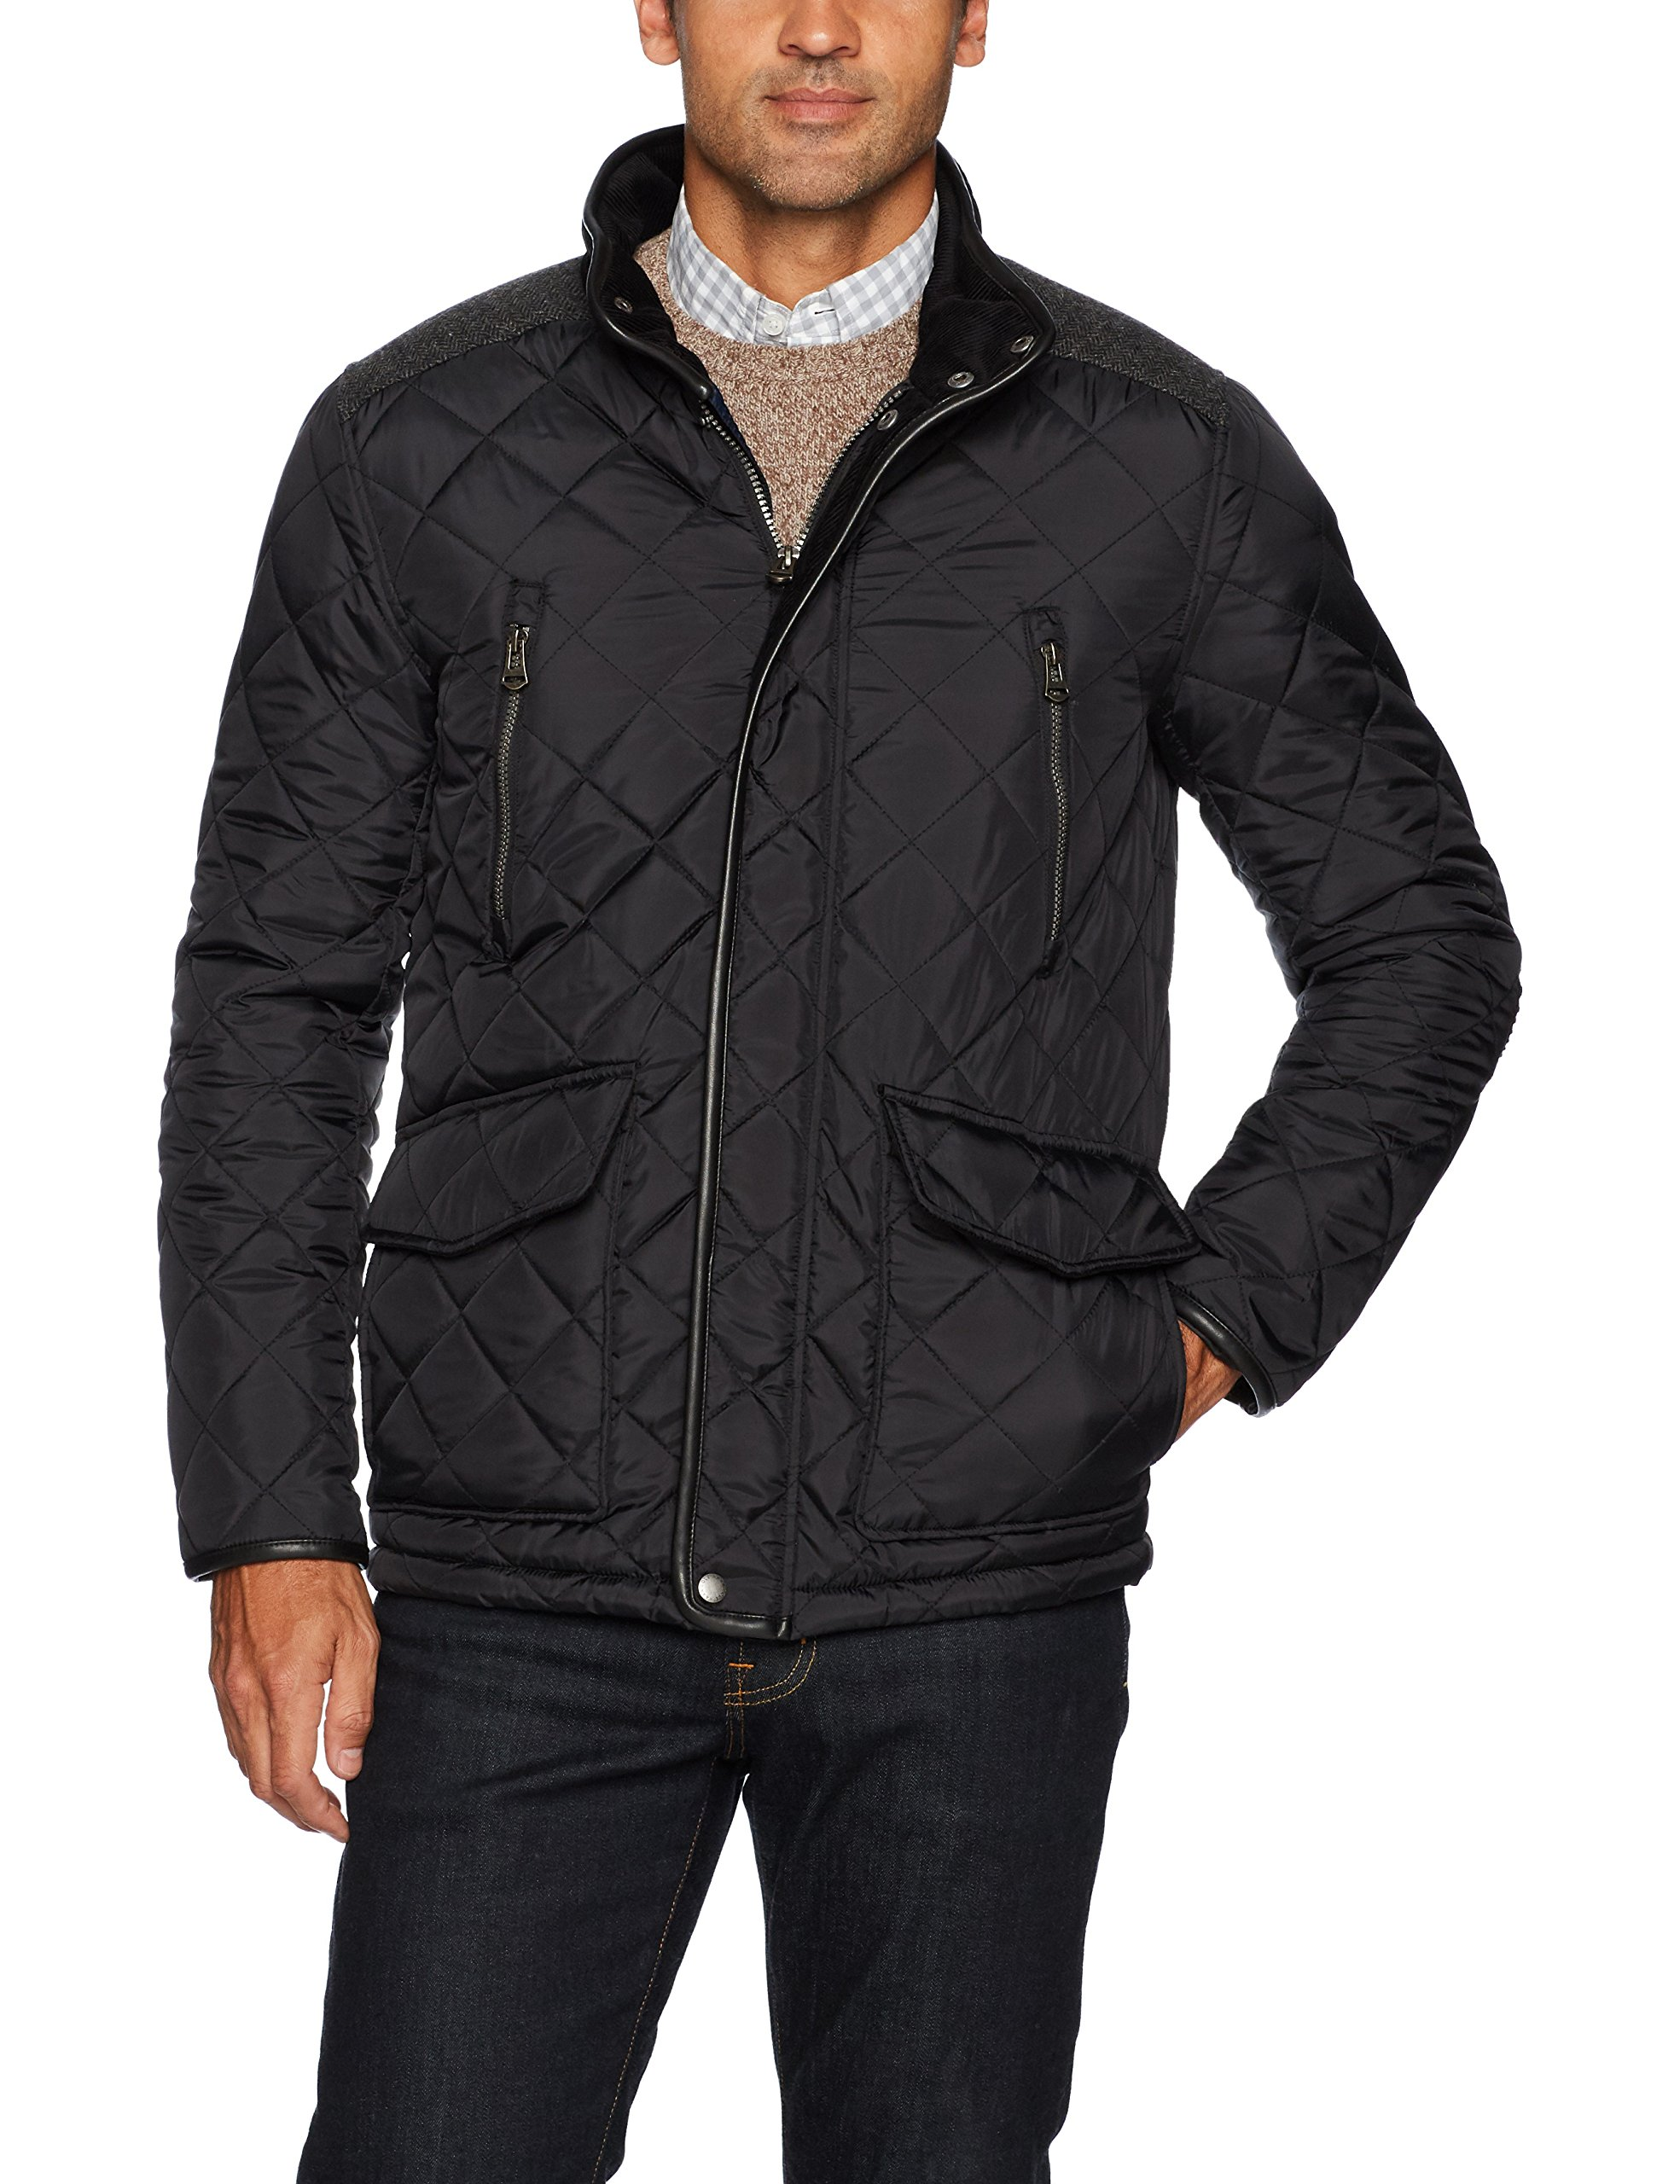 Cole Haan Men's Quilted Jacket, Black, Small by Cole Haan